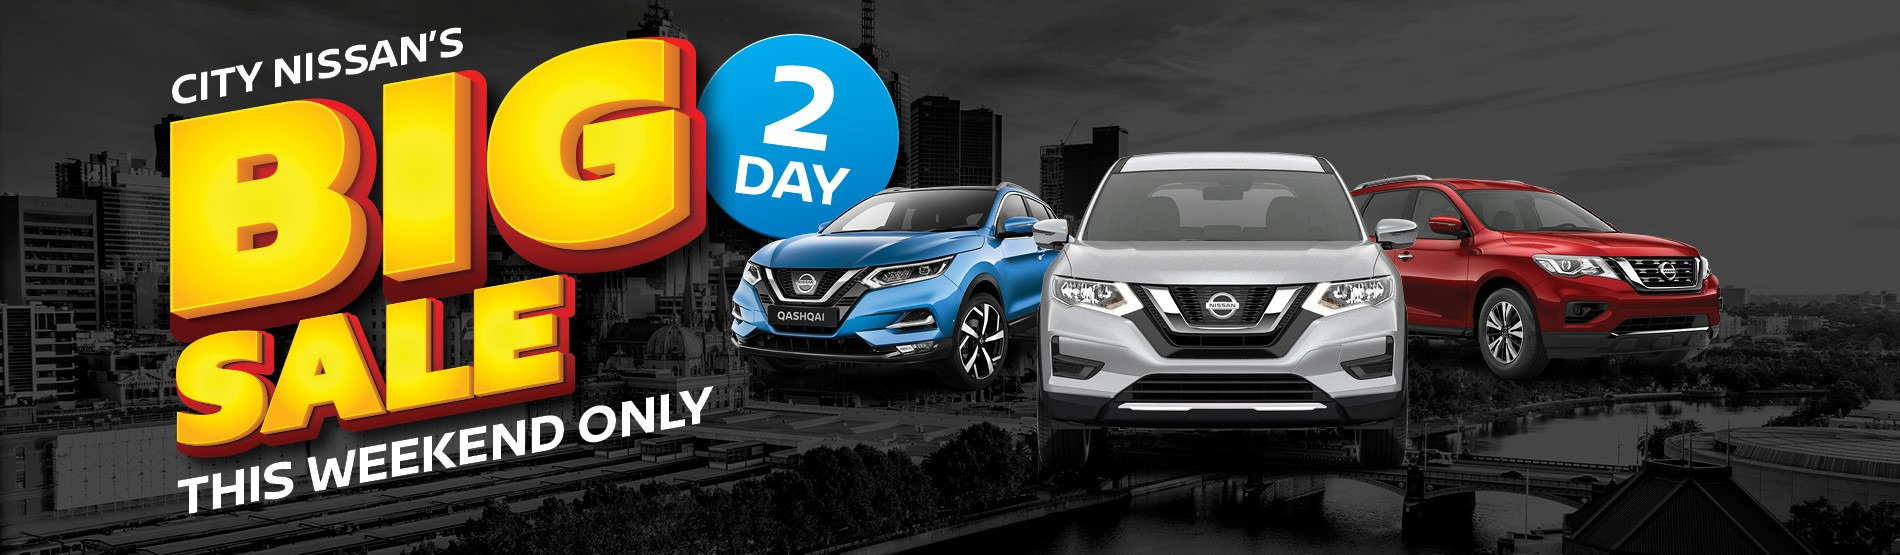 City Nissan BIG 2 Day Sale - This Weekend Only